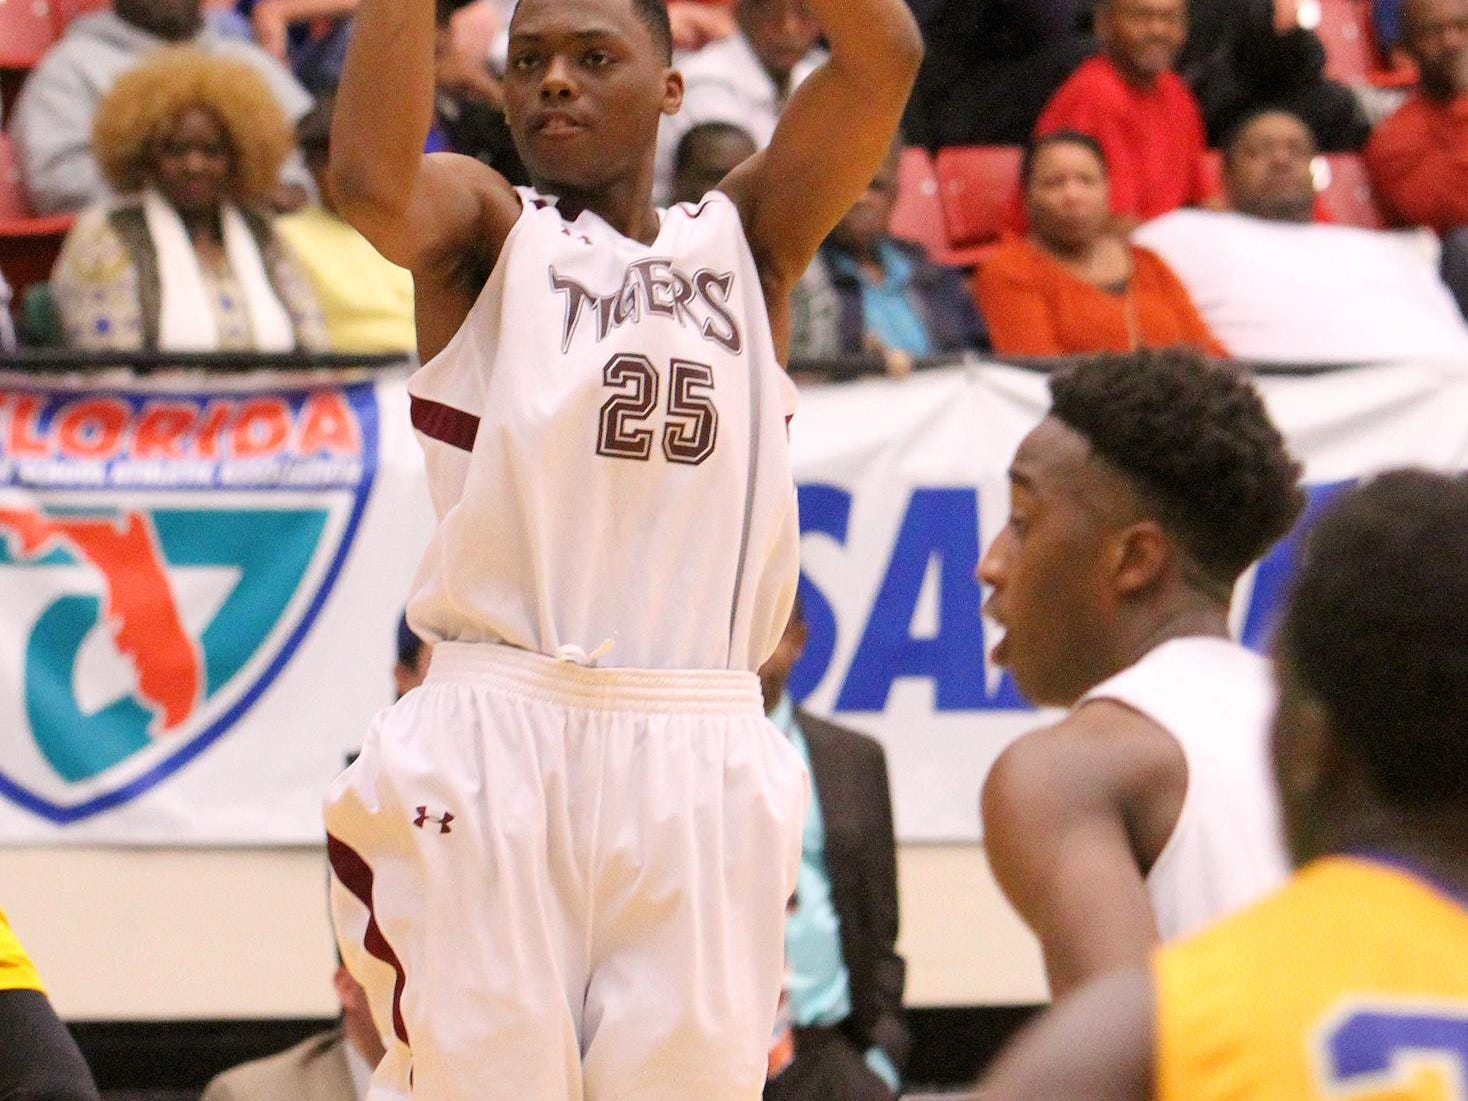 Pensacola Javon Grimsley goes up uncontested for a basket against Largo during the FHSAA 6A semi final Friday February 26, 2016 in Lakeland, Florida. Pensacola lost the match 54-56. Photos by Cindy Skop 2016